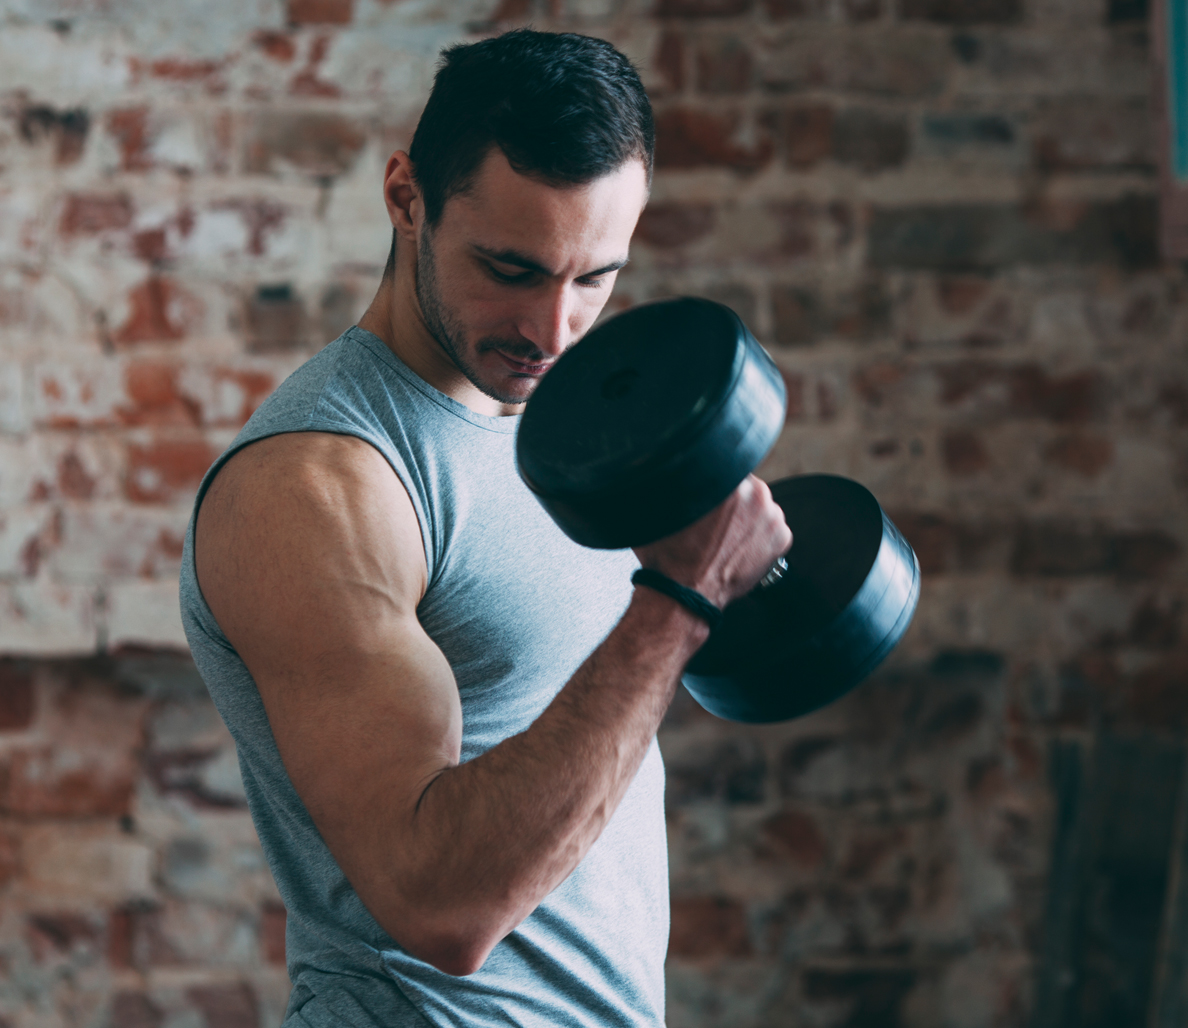 If You Want to Build Muscle and Gain Strength, Lift Lighter